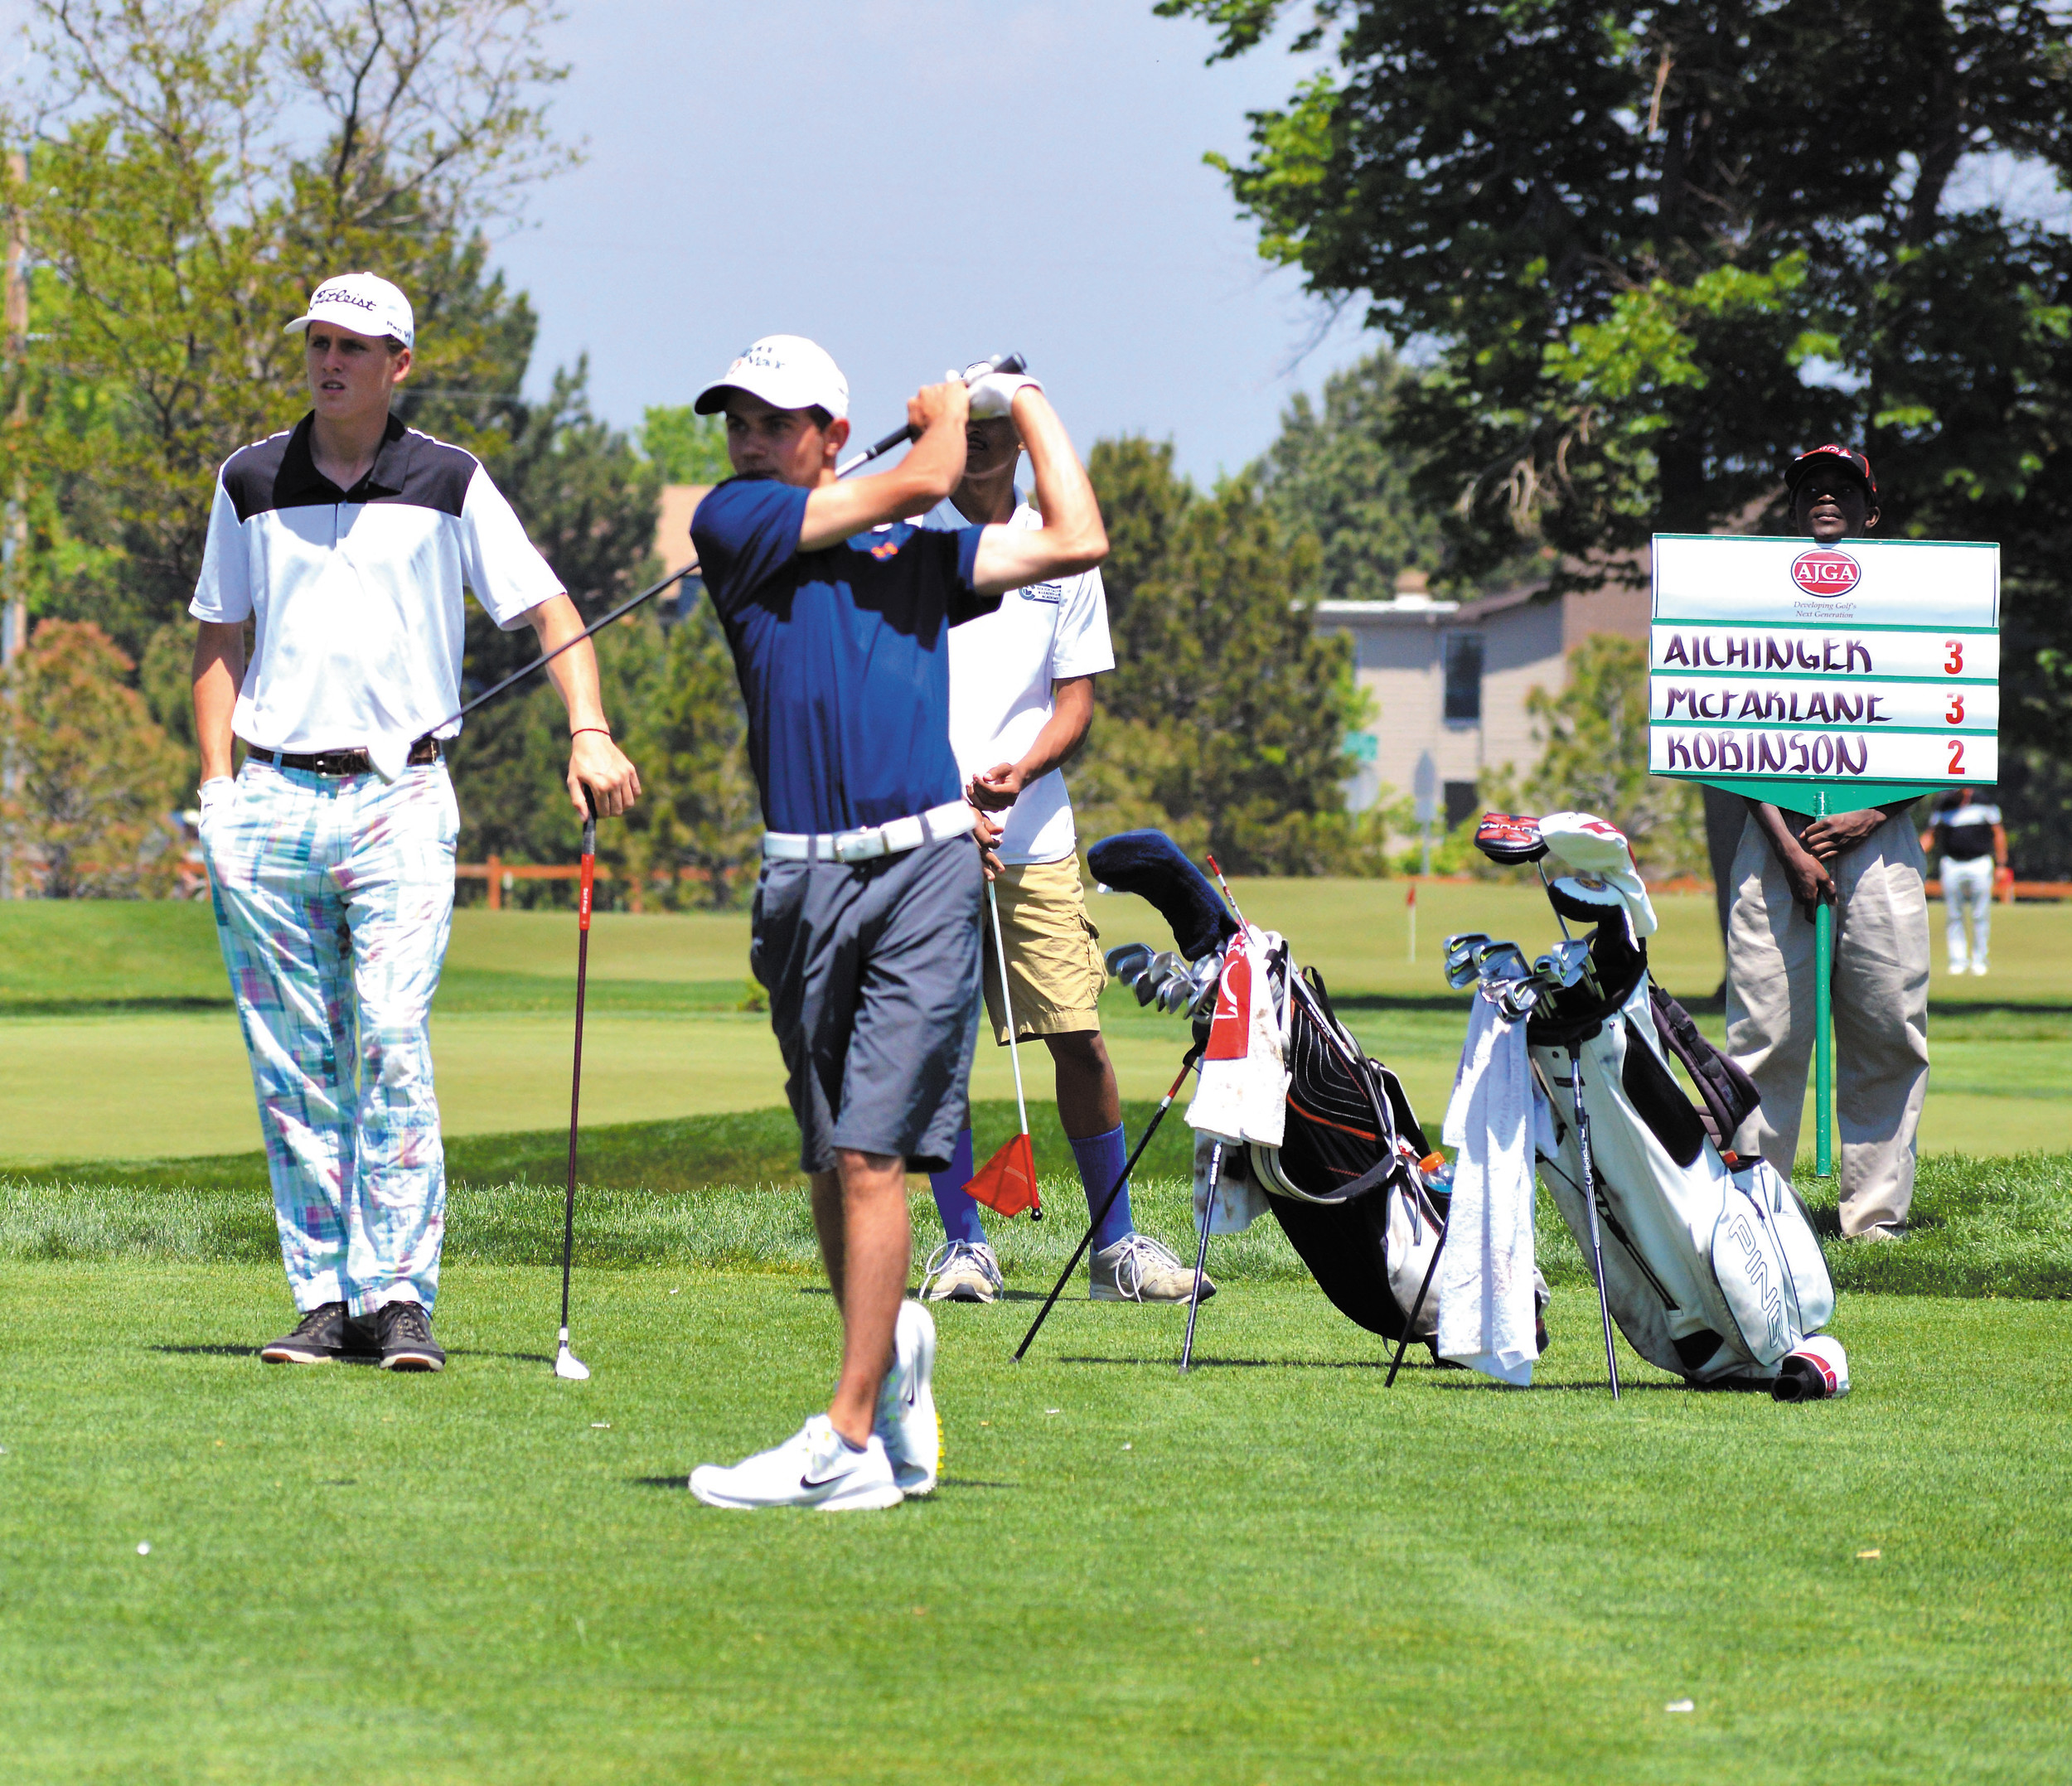 Local Players Tie For Ninth In Junior Event